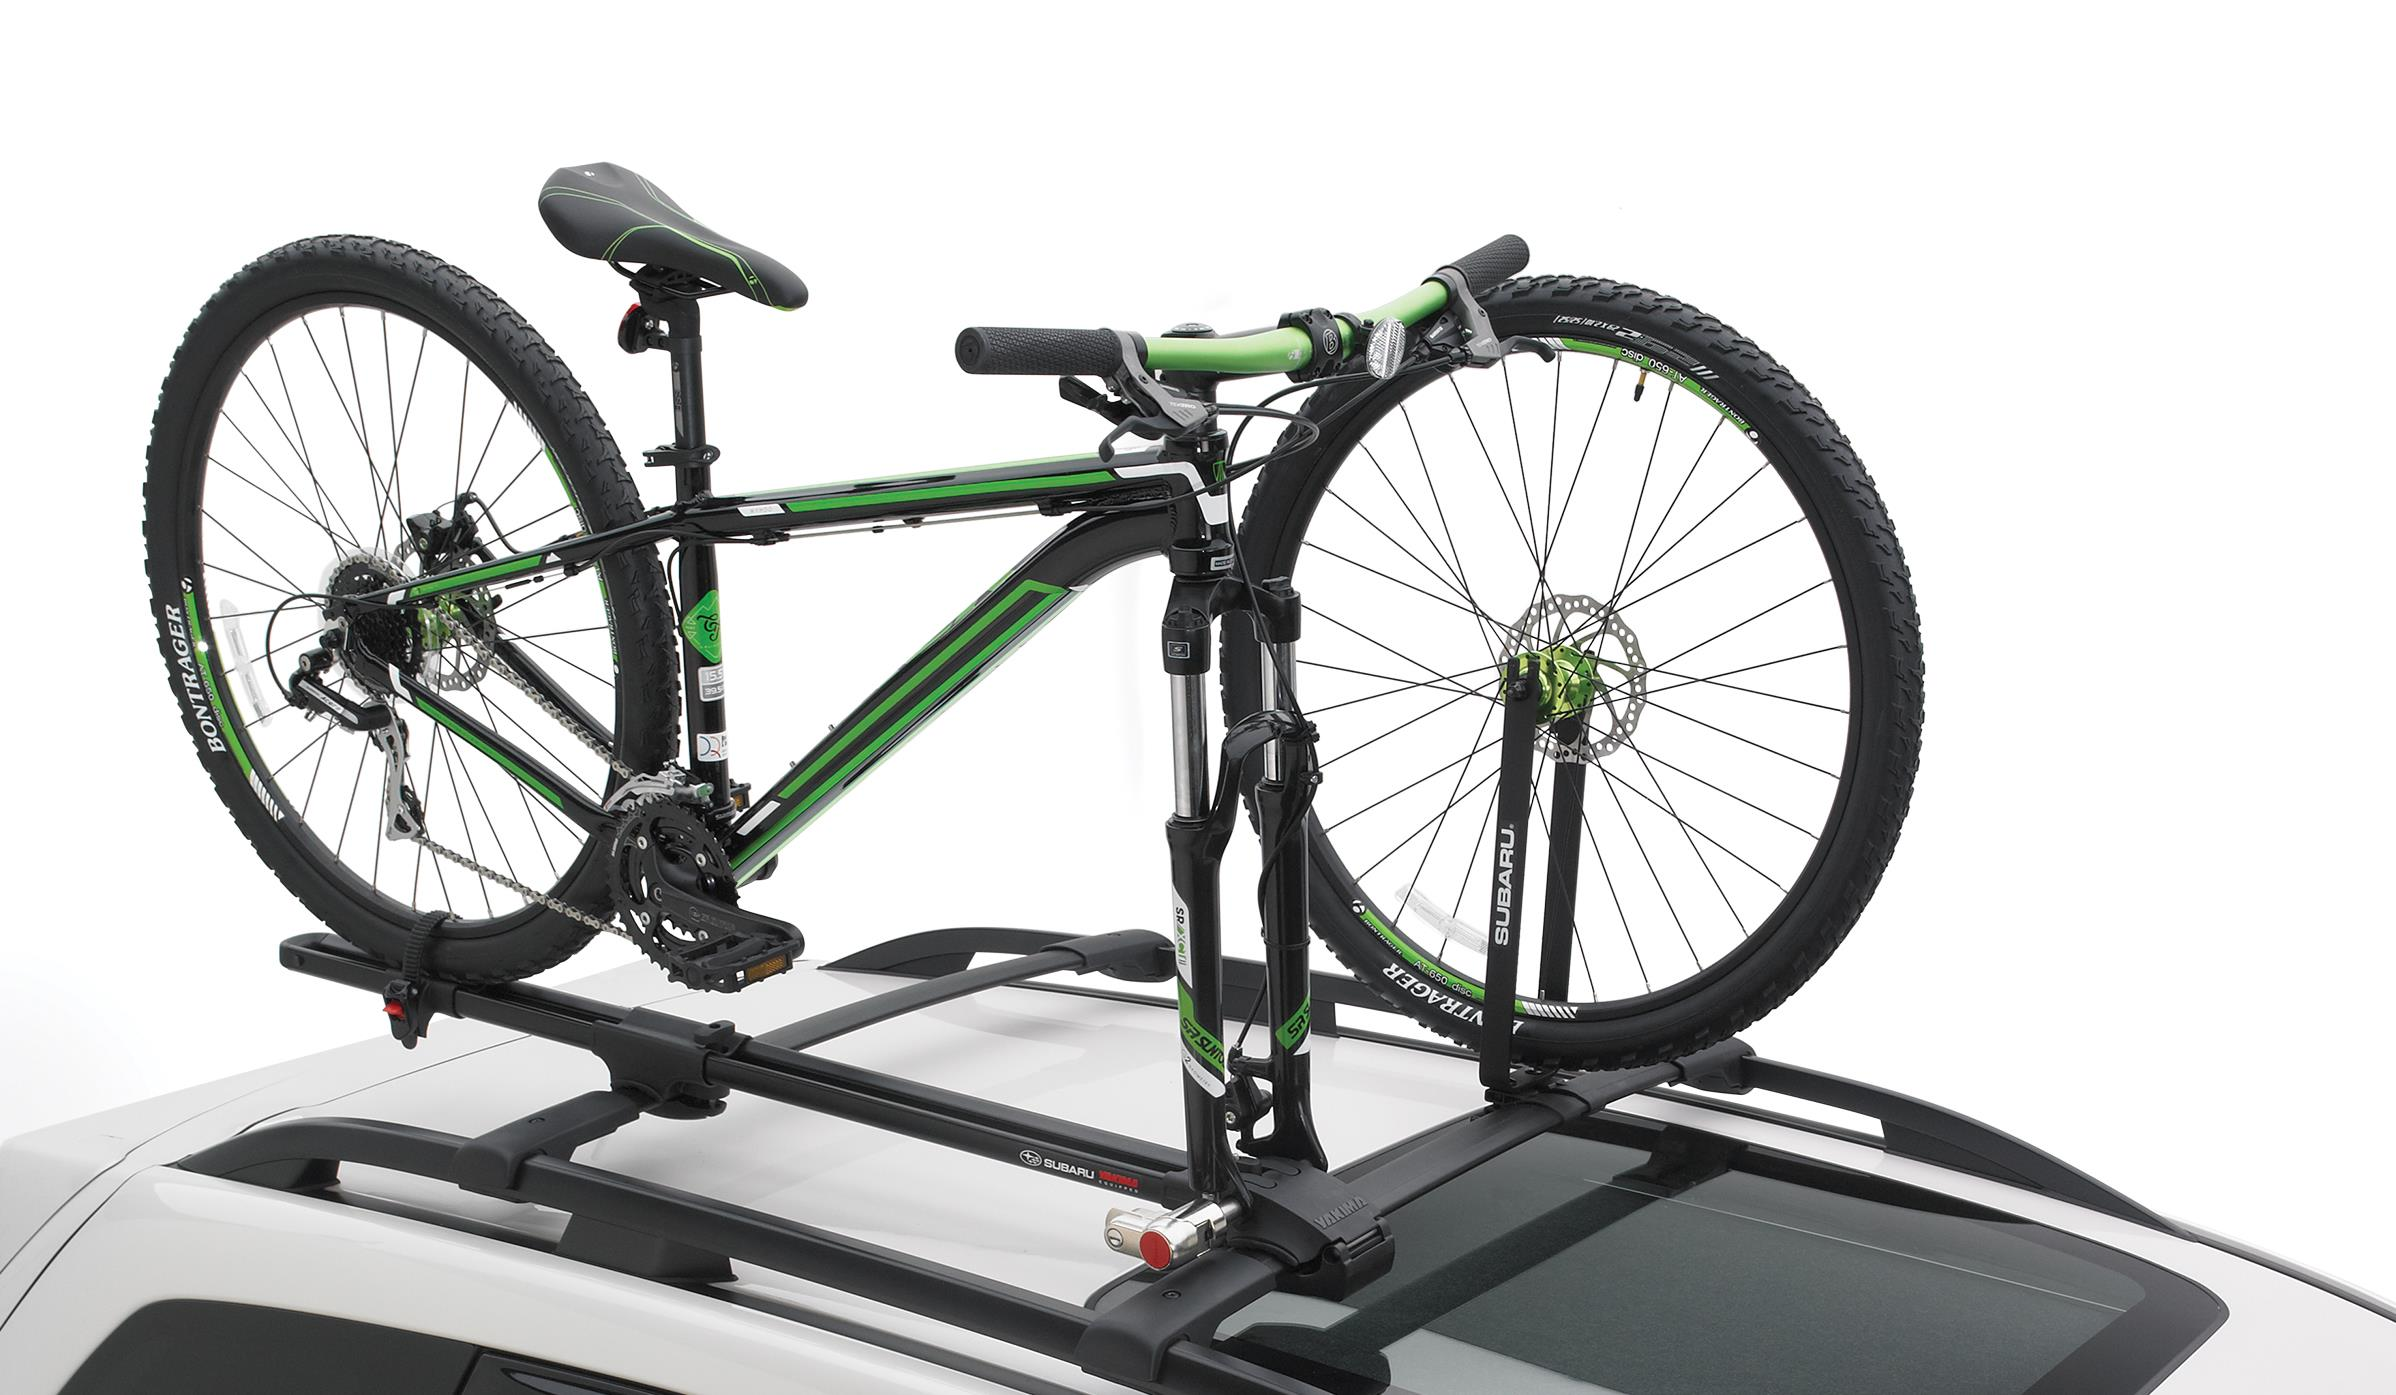 Thule Raceway 991 992 moreover 18663 Trailer Hitch Spare Tire Mount Foldable further Thule Bike Rack Uk in addition Benj S Eb T5 Ghia Wagon T71774 117 additionally Hitchgate. on subaru forester rear bike carrier